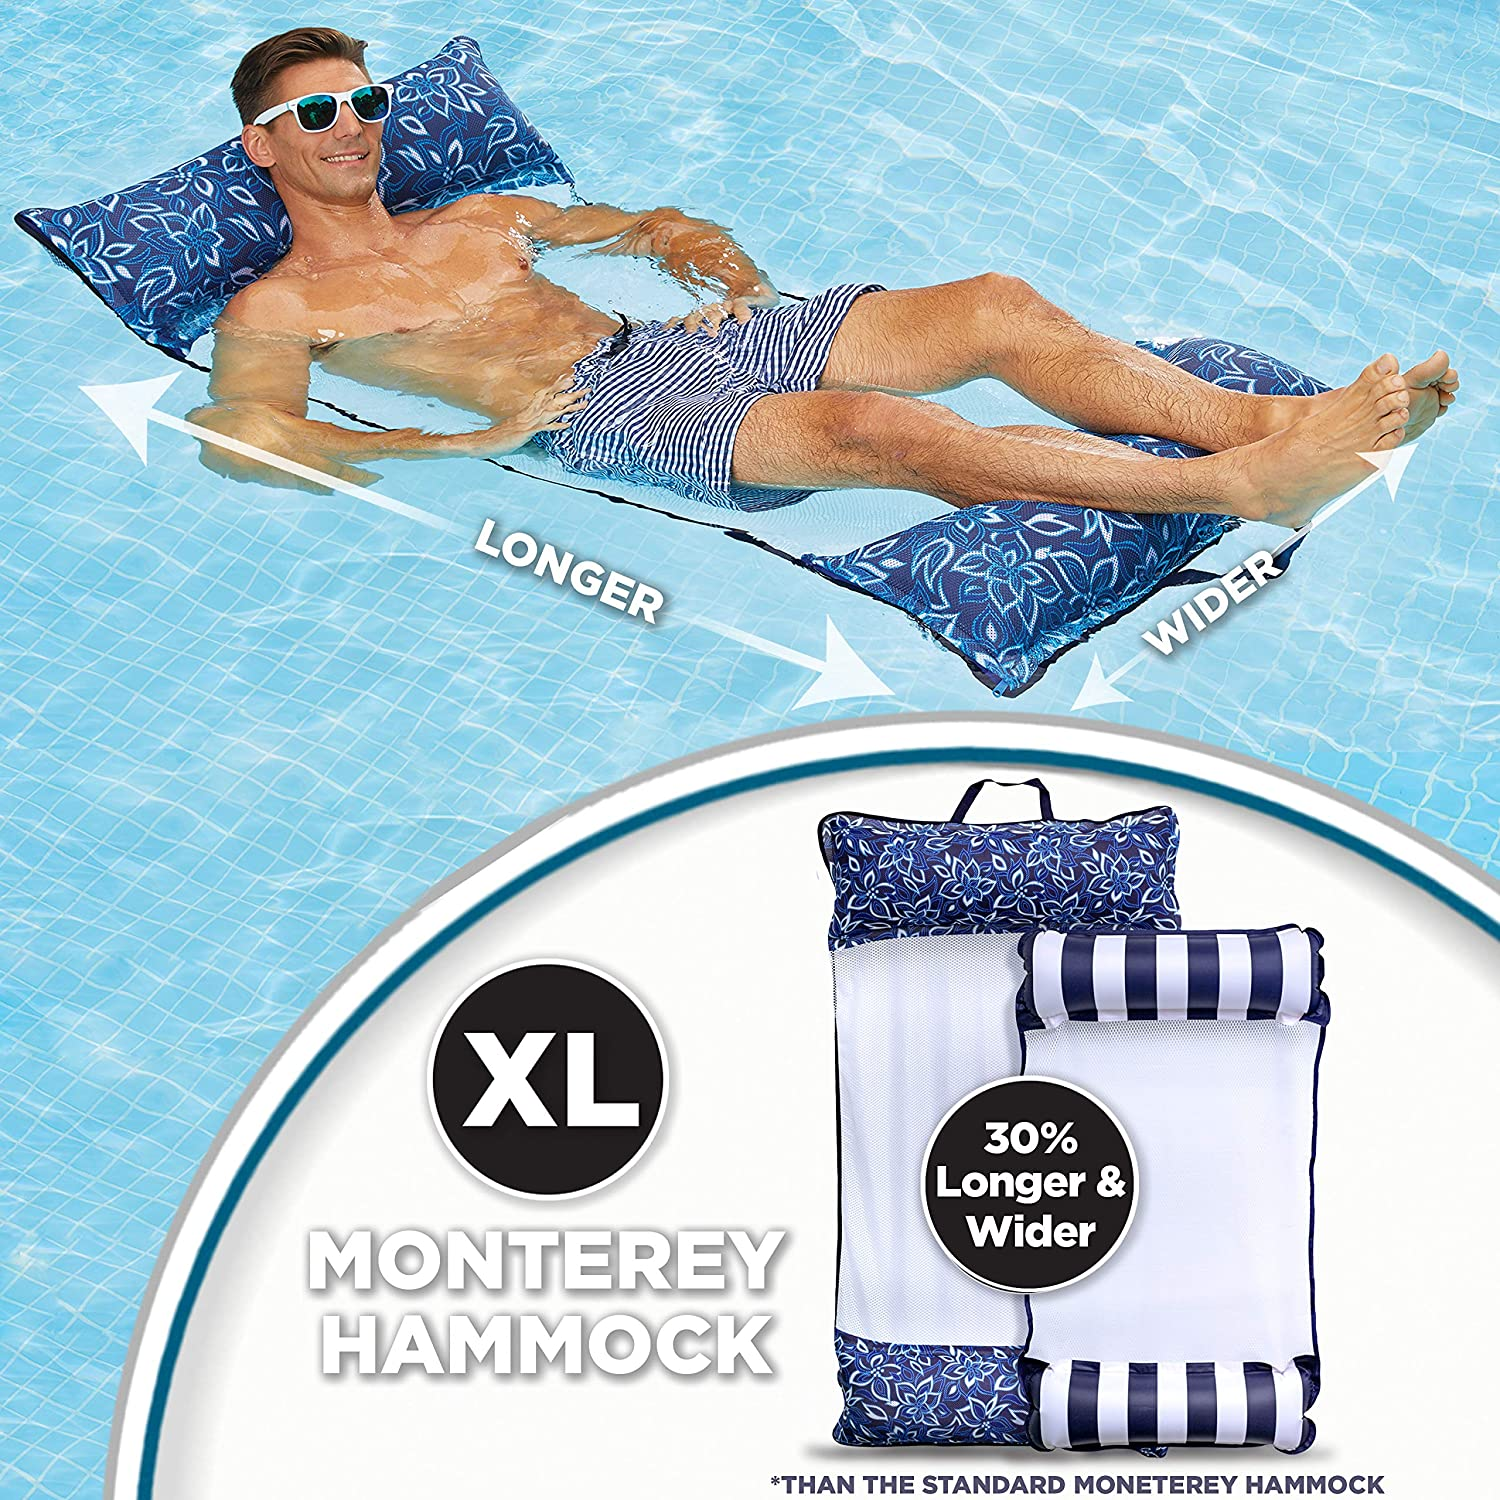 Aqua 4-in-1 Monterey Hammock Supreme XL (Longer/Wider) Multi-Purpose Adult Pool Float